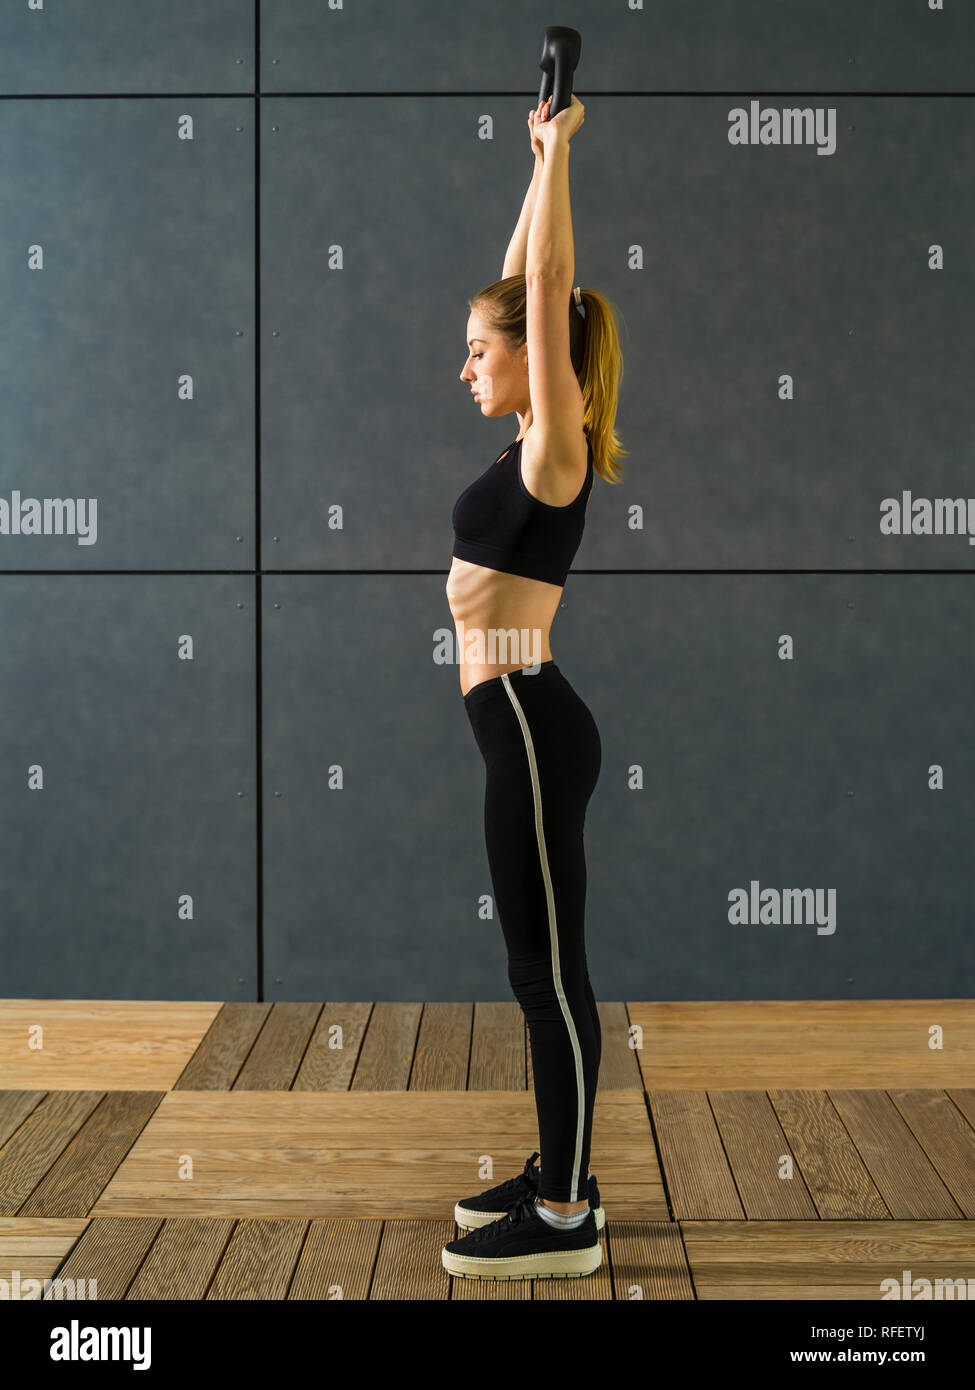 Photo of a young blond woman in her twenties exercising her shoulders with a kettlebell above her head. - Stock Image